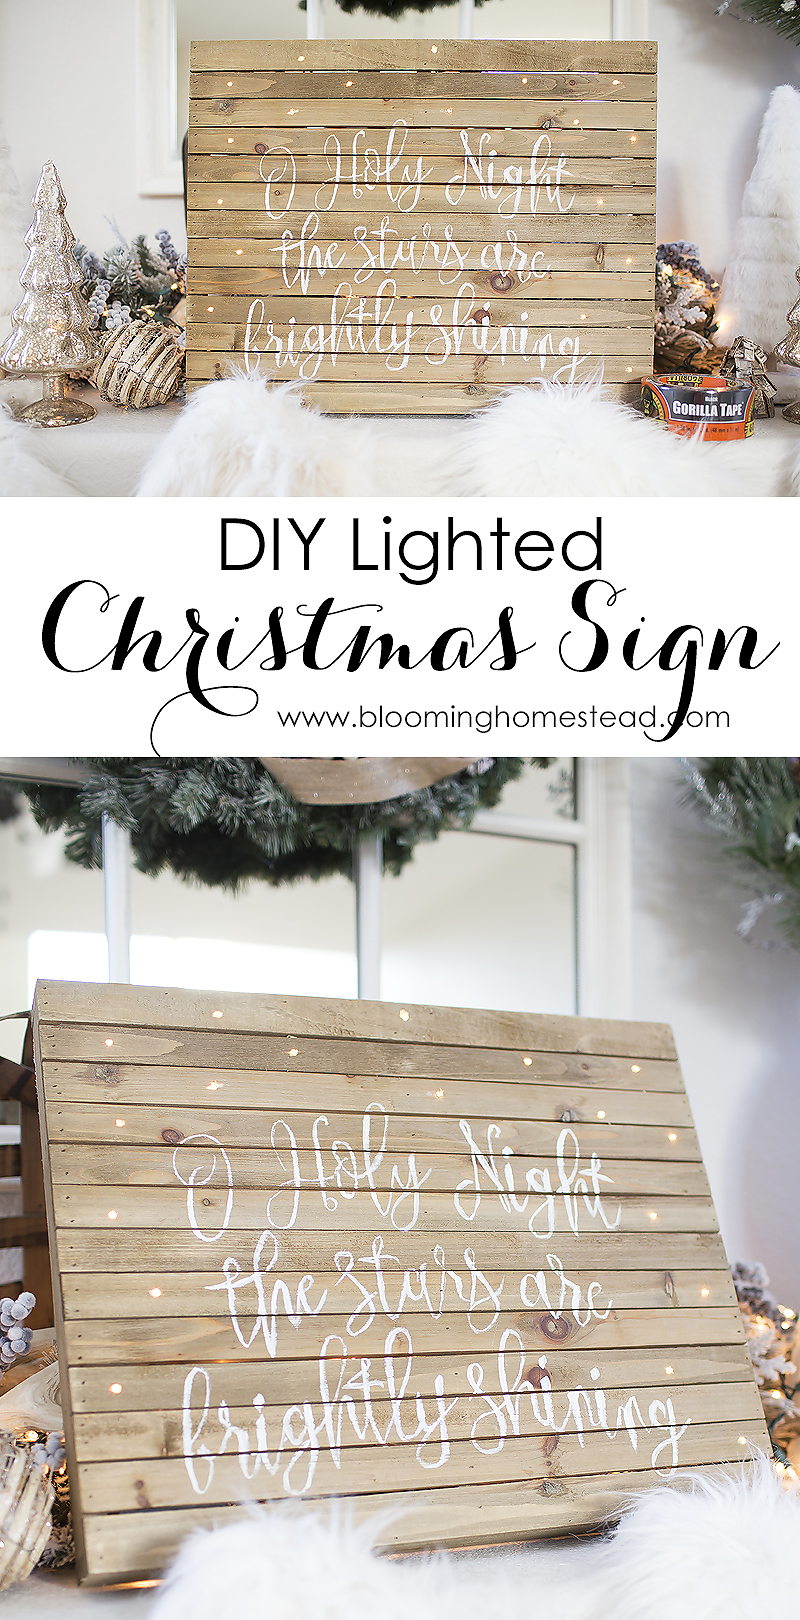 http://www.bloominghomestead.com/wp-content/uploads/2017/12/DIY-Lighted-Christmas-Sign-by-Blooming-Homestead.jpg